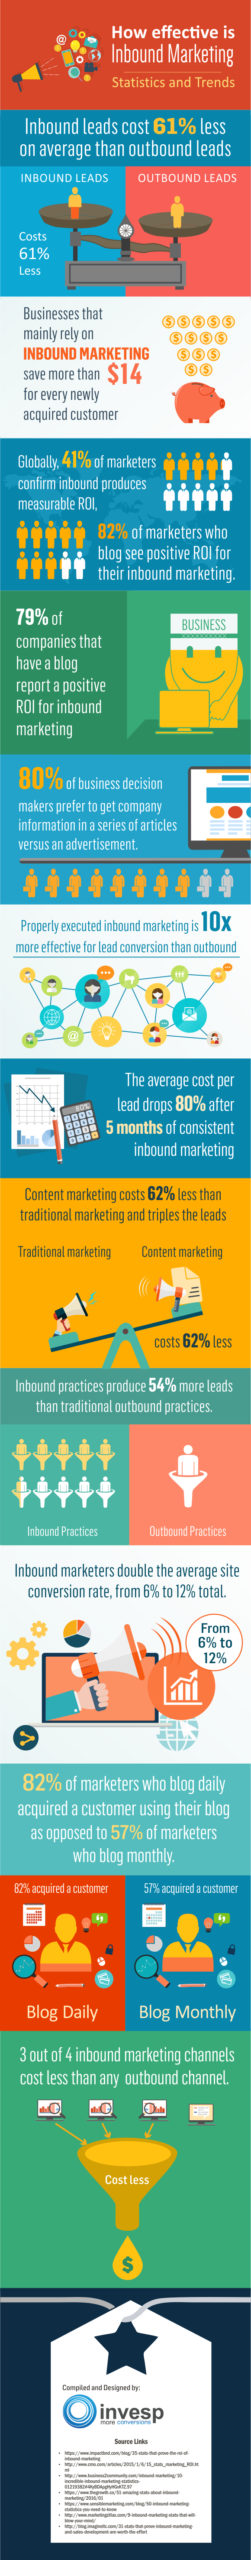 How effective is inbound marketing?